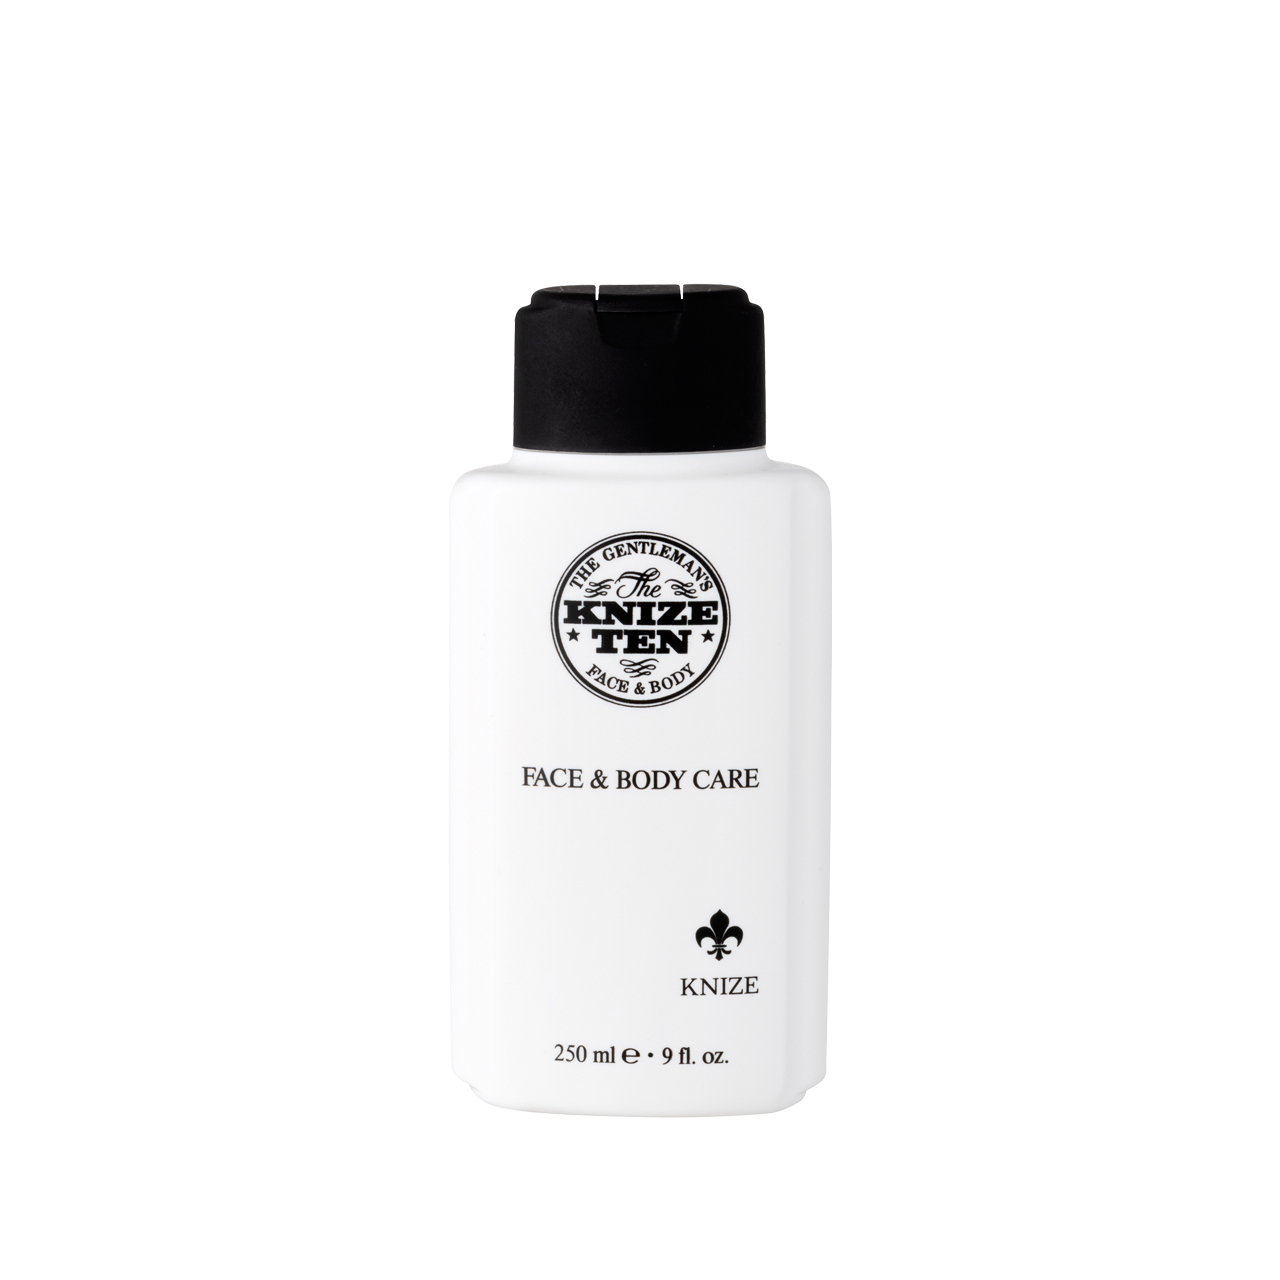 Ten - Face & Body Care